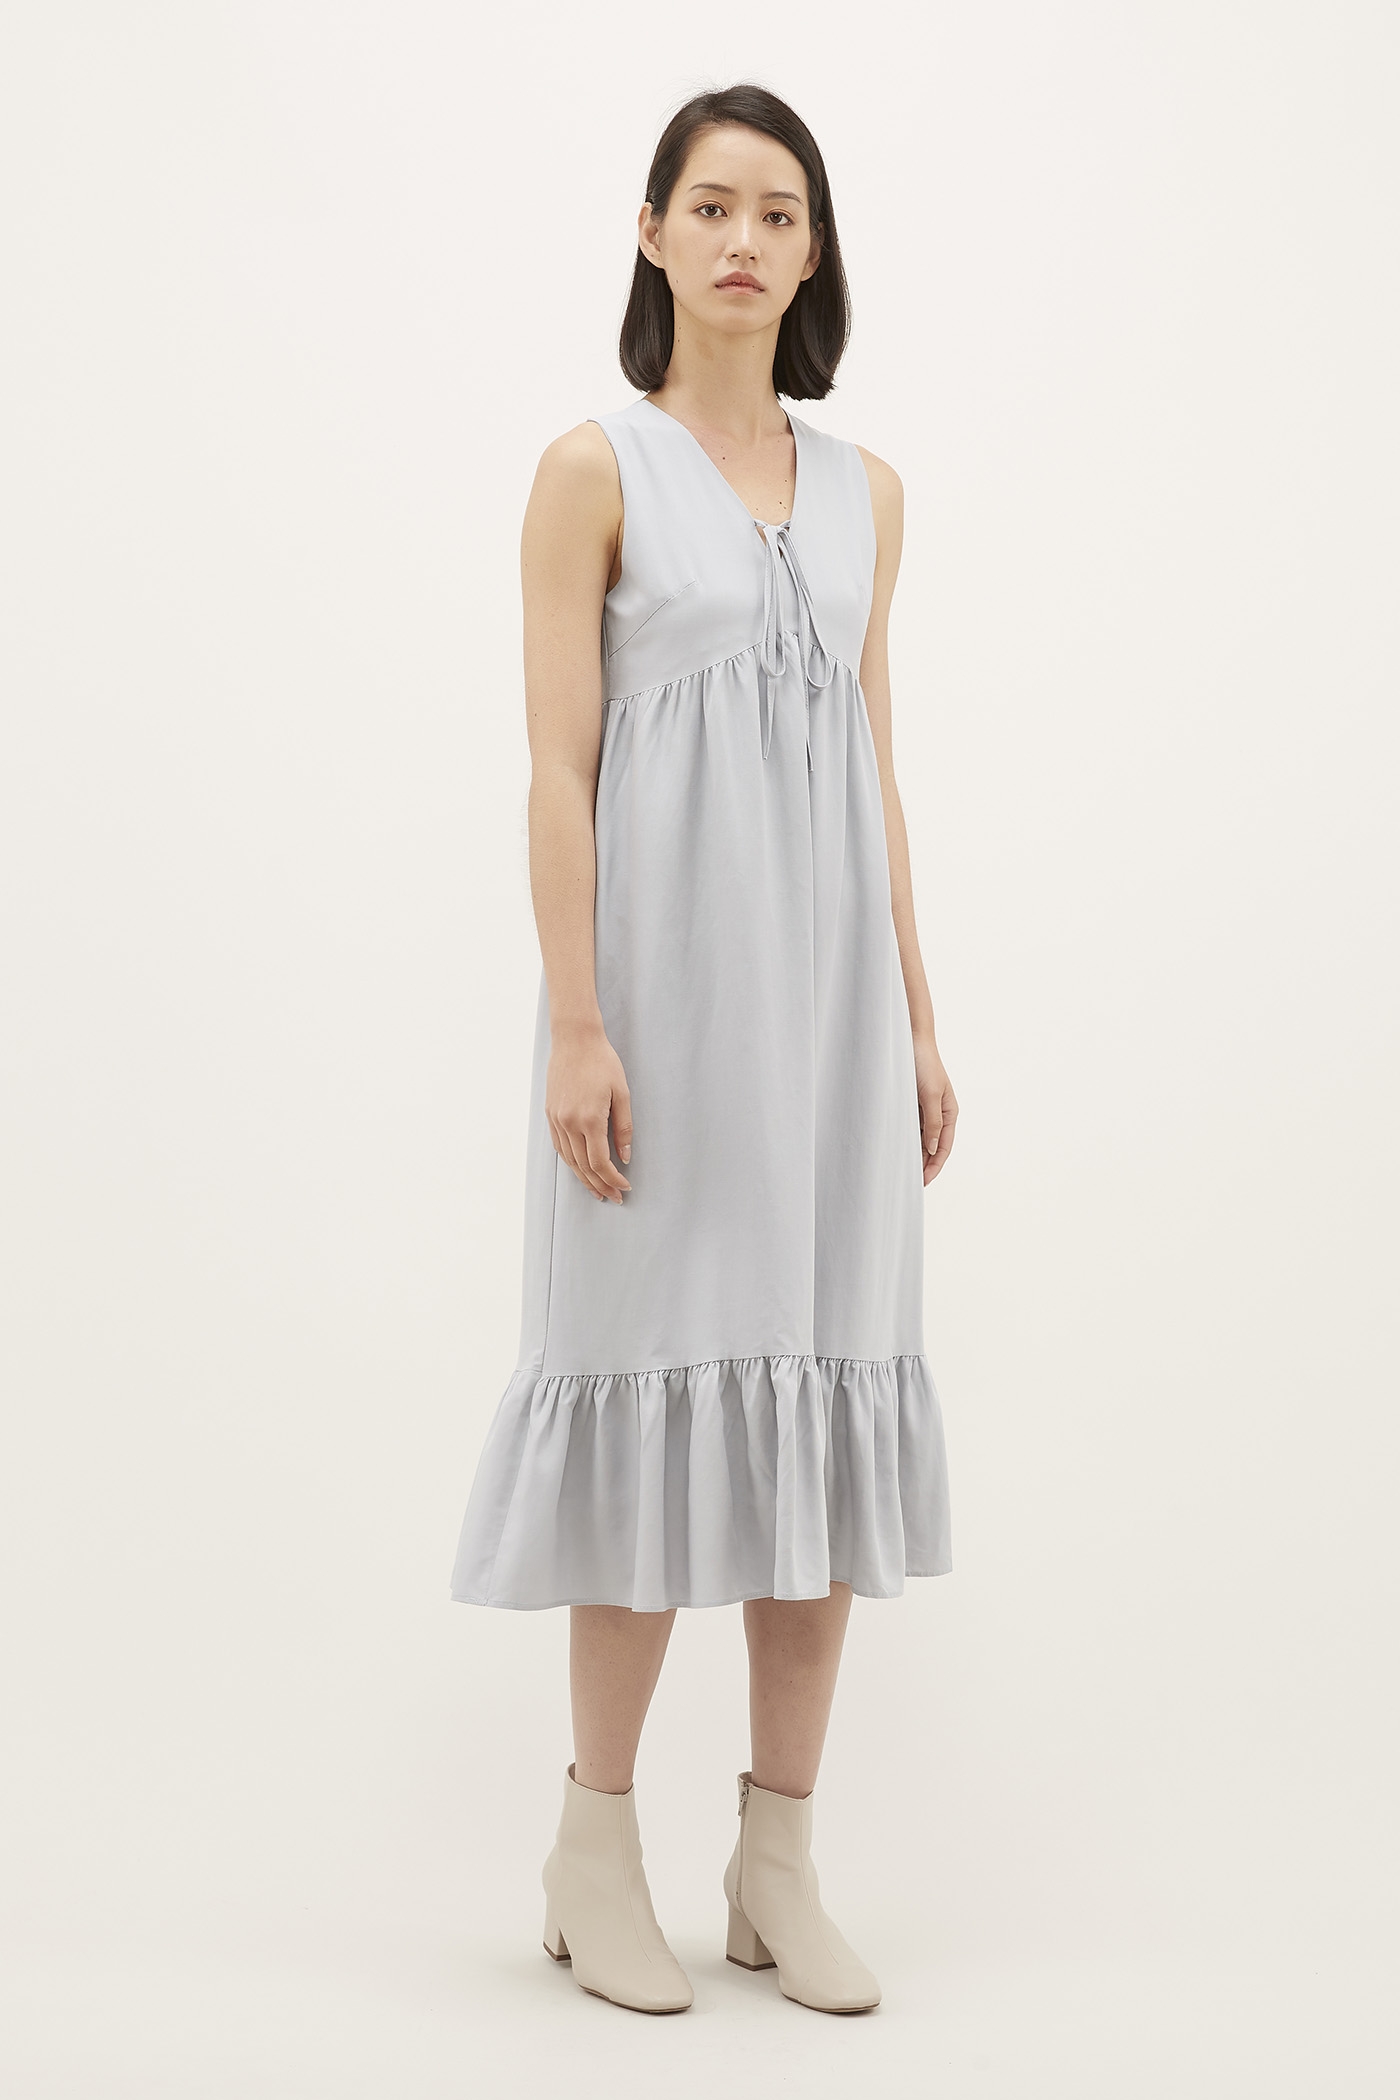 Solina Front-tie Dress